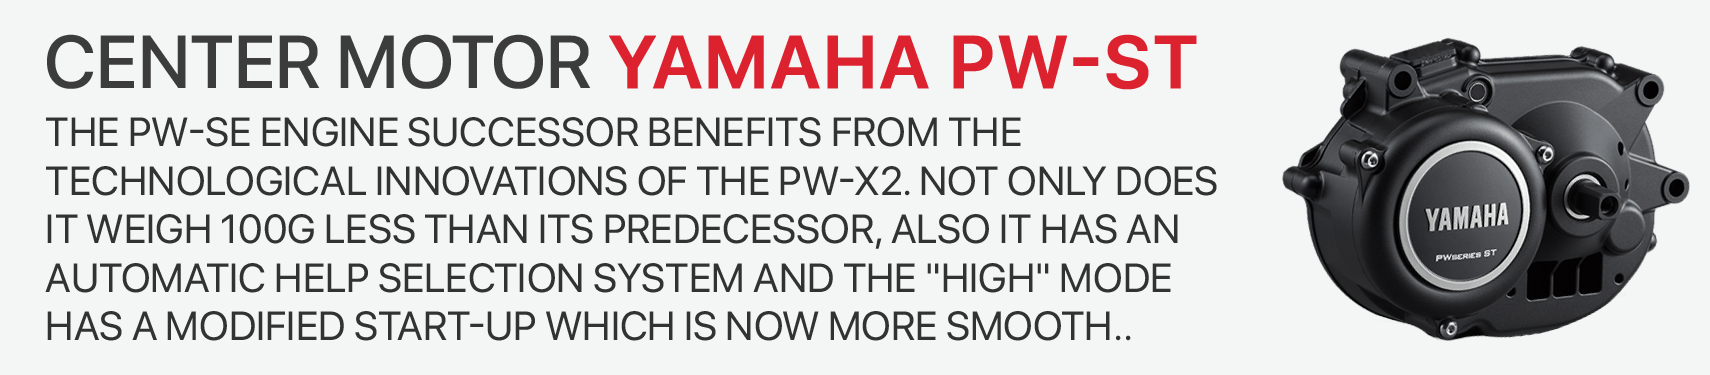 The PW-SE engine successor benefits from the technological innovations of the PW-X2. Not only does it weigh 100g less than its predecessor, also IT HAS an automatic help selection system and the HIGH mode has a modified start-up which is now more smooth..